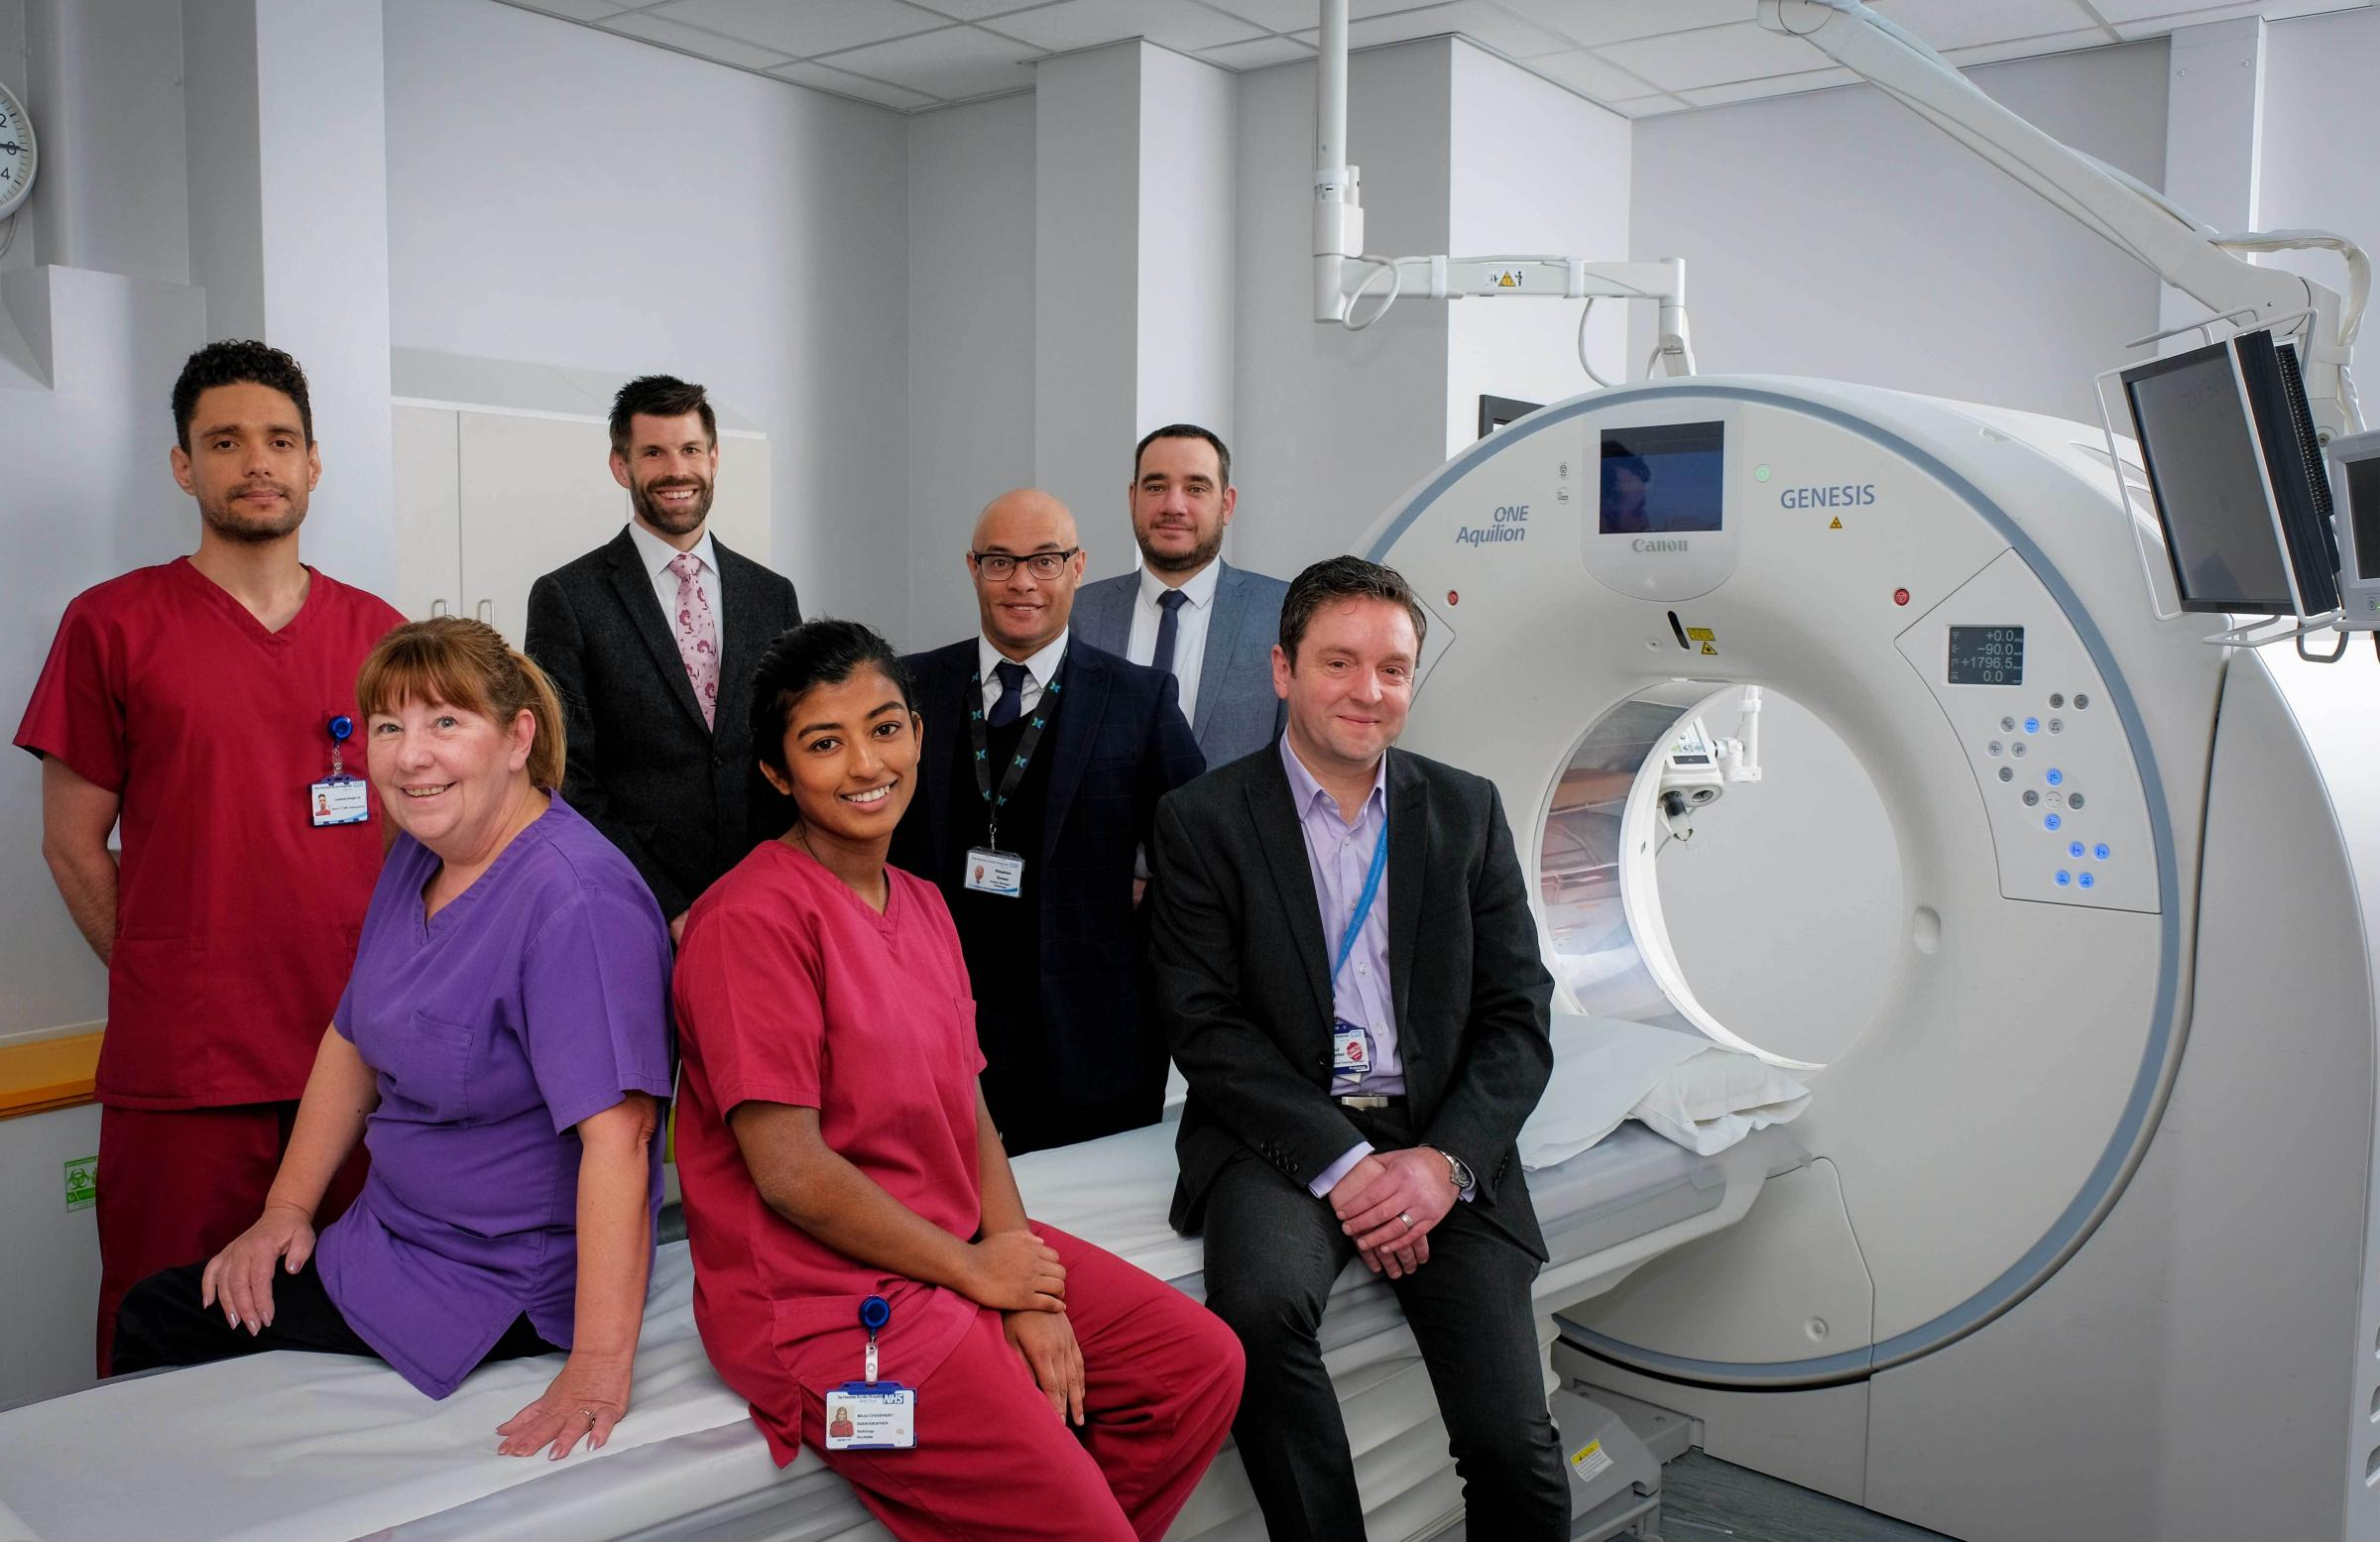 Leonardo Borges De Souza, Radiographer, Colin Murray, Account Manager for Canon Medical Systems Ltd, Stephen Green, Radiology Project Manager, James King, Project Manager for Canon Medical Systems Ltd, Paul Barker, Senior Directorate Manager for Radiology